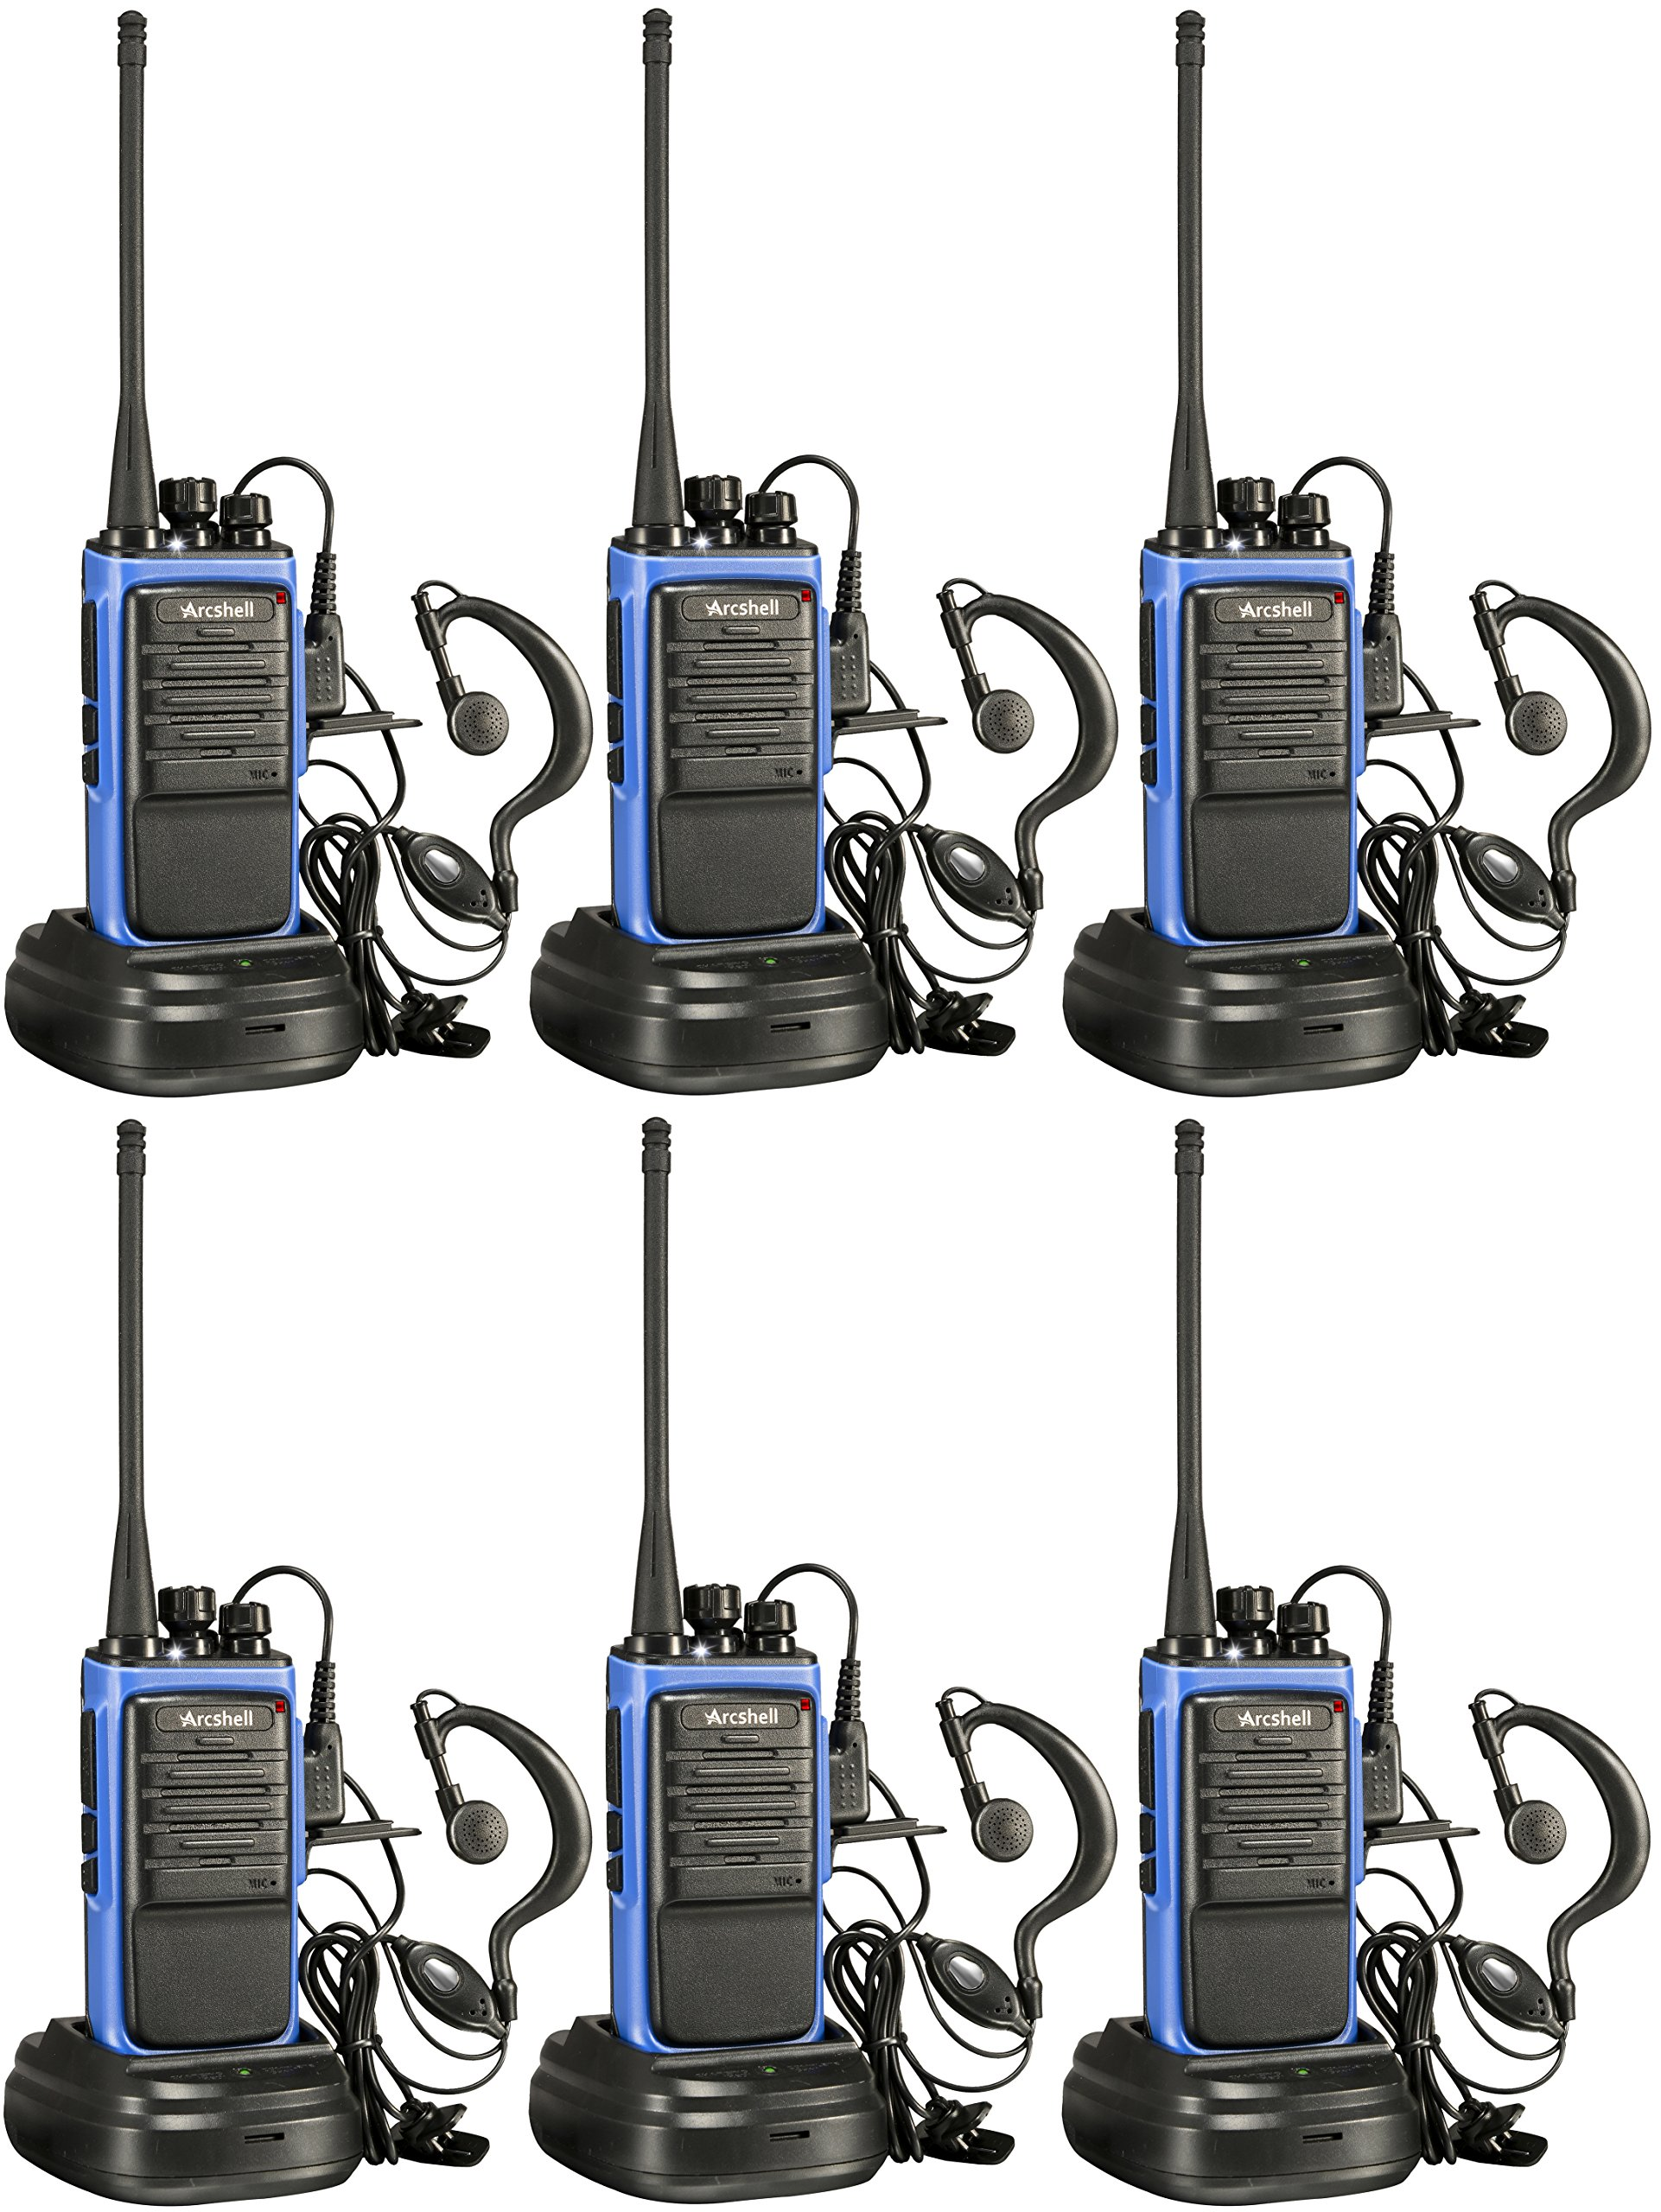 Arcshell Rechargeable Long Range Two-Way Radios with Earpiece 6 Pack UHF 400-470Mhz Walkie Talkies Li-ion Battery and Charger Included by Arcshell